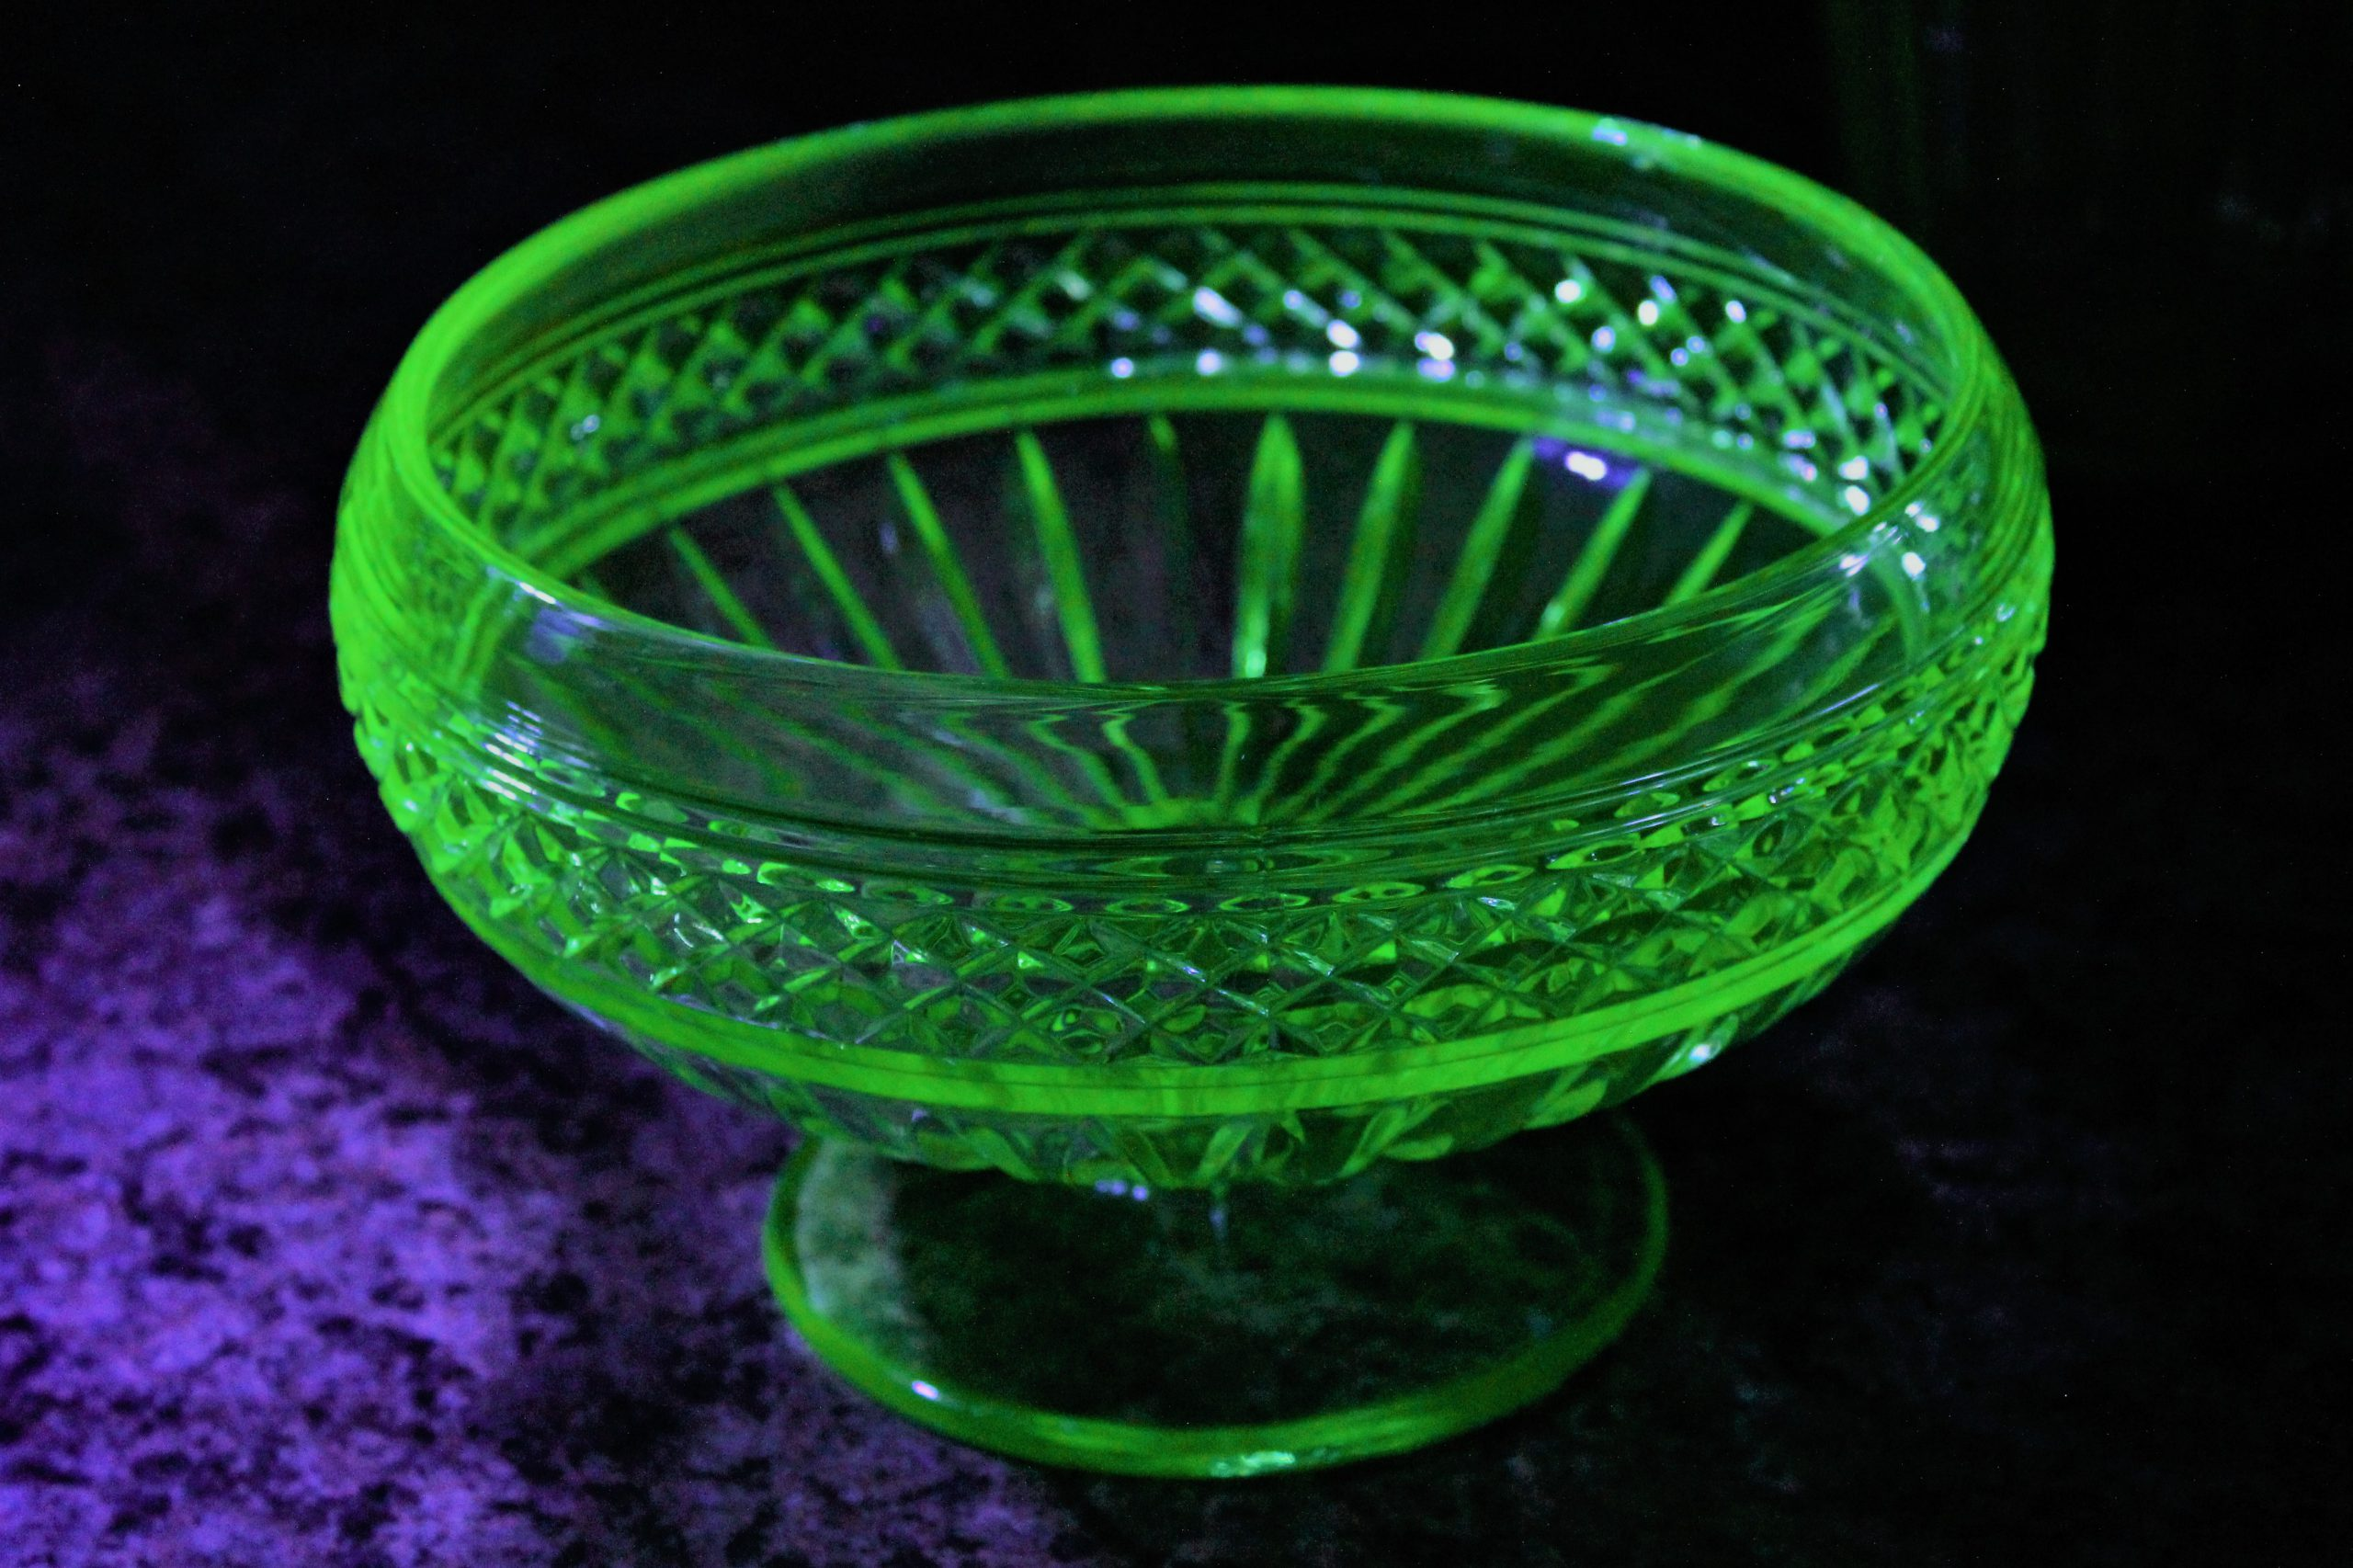 My most radioactive fancy bowl